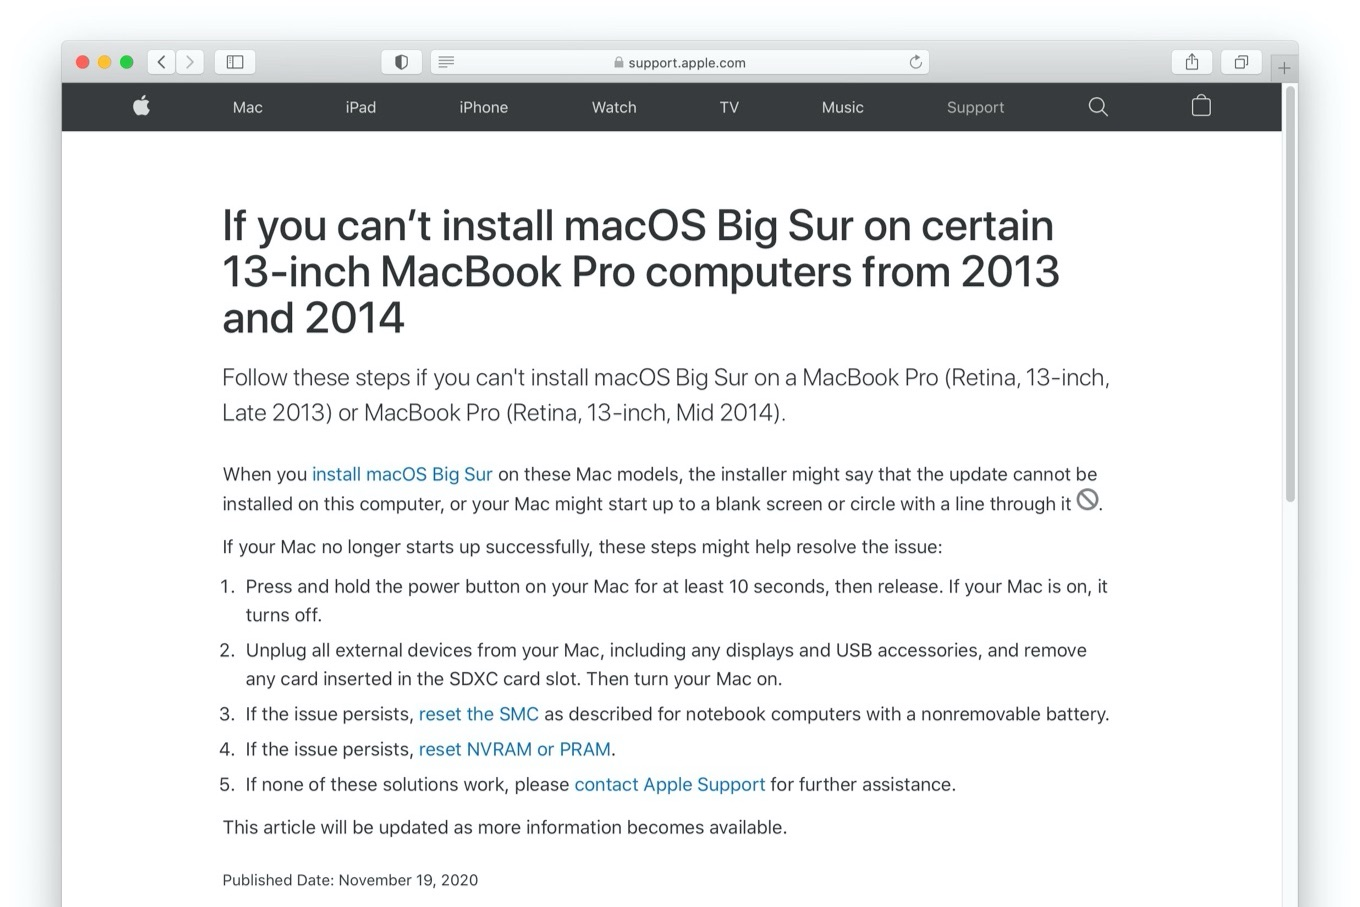 If you can't install macOS Big Sur on certain 13-inch MacBook Pro computers from 2013 and 2014